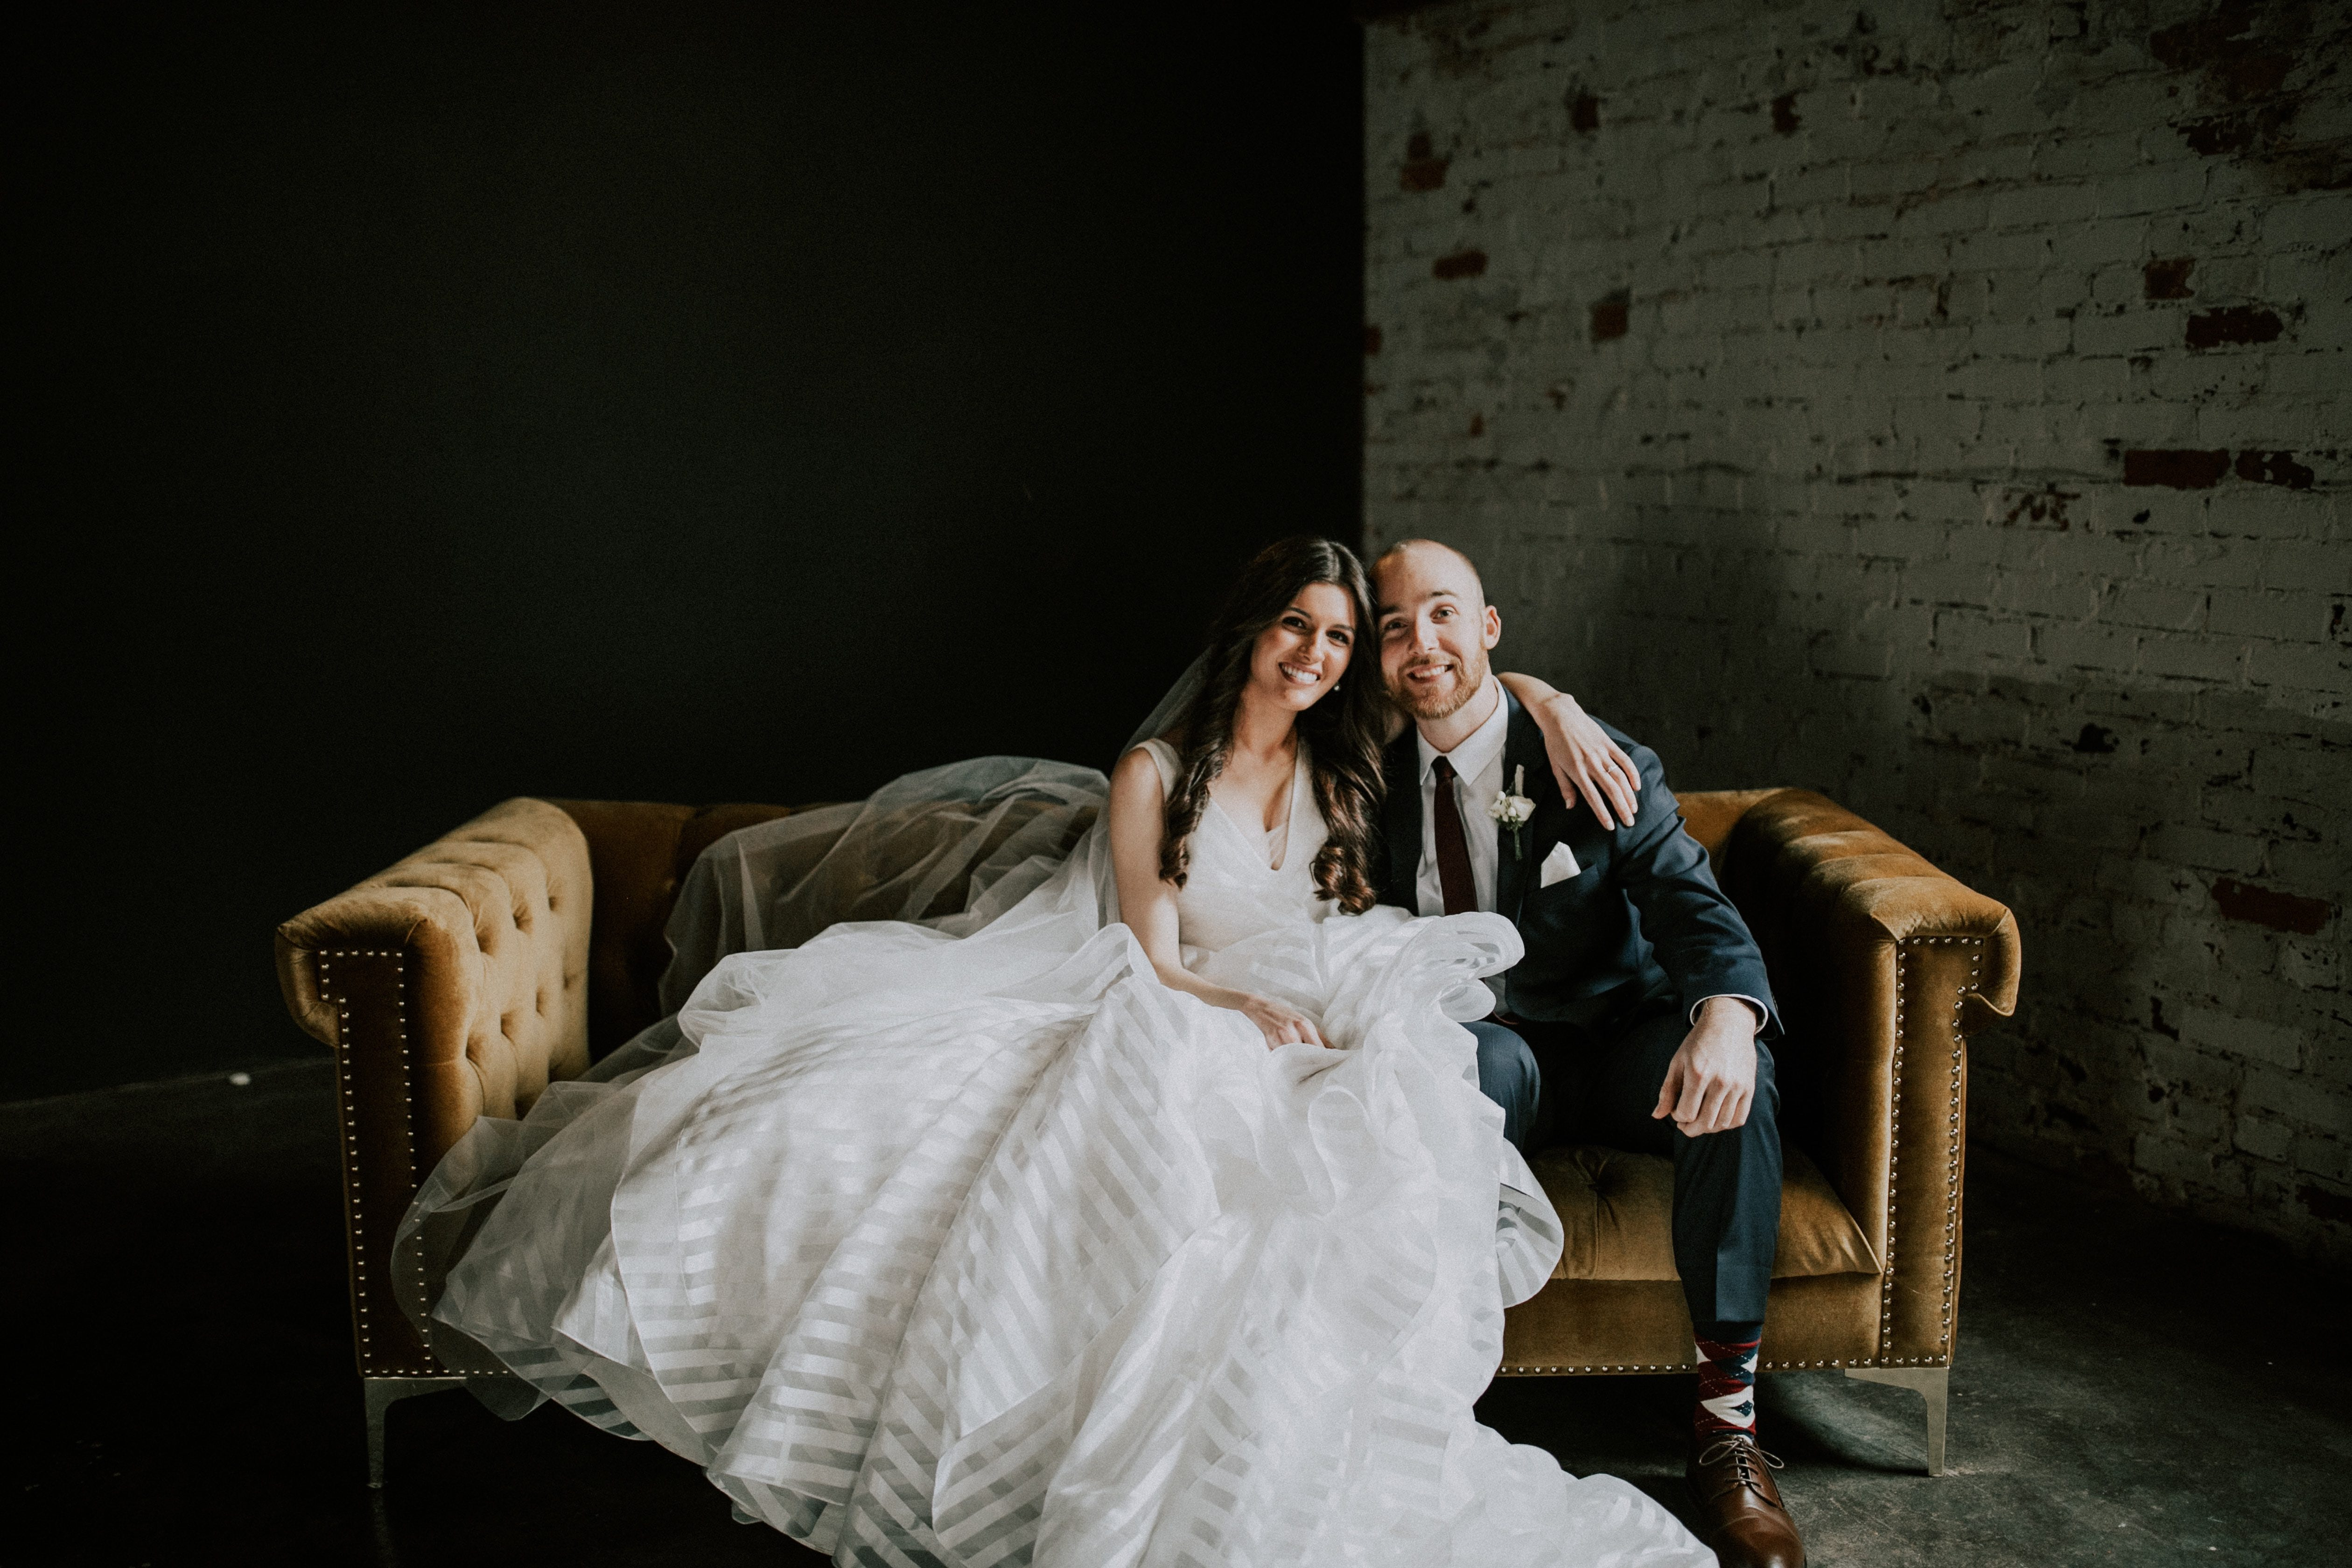 Newlyweds sitting on a couch